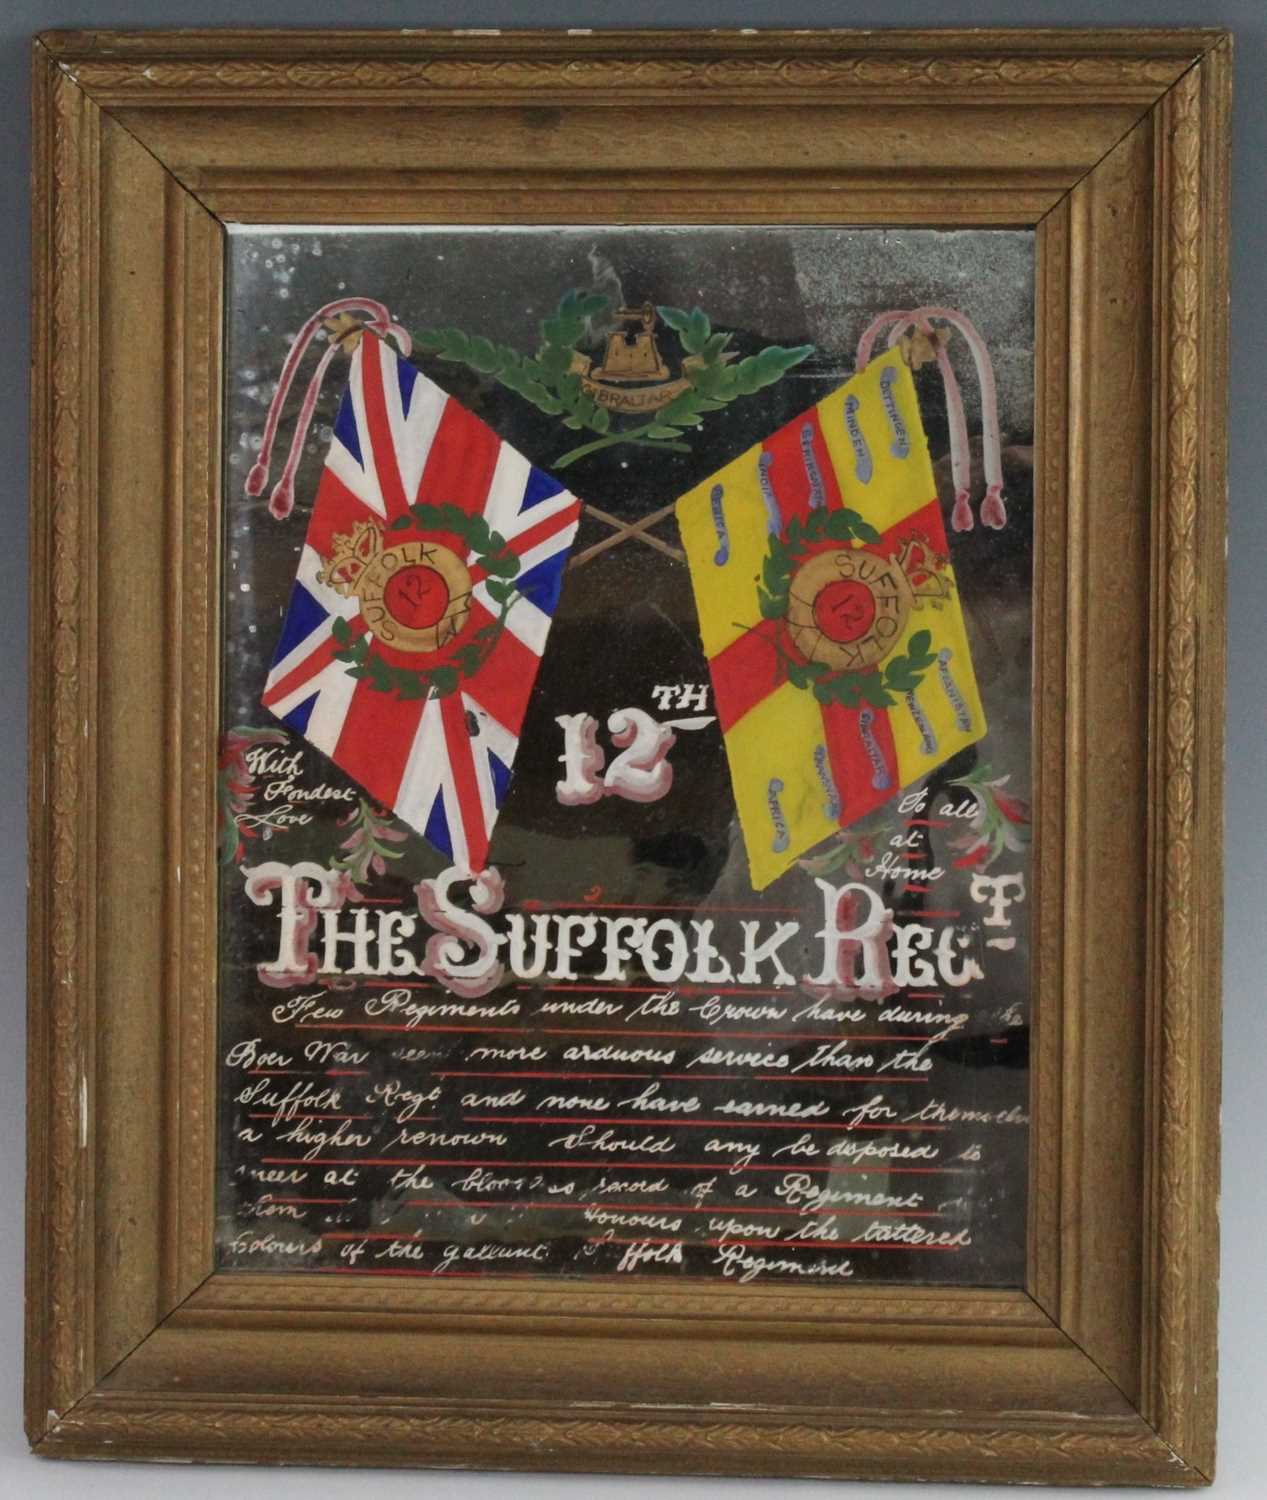 An early 20th century mirror, the rectangular plate painted with flags of the 12th Suffolk